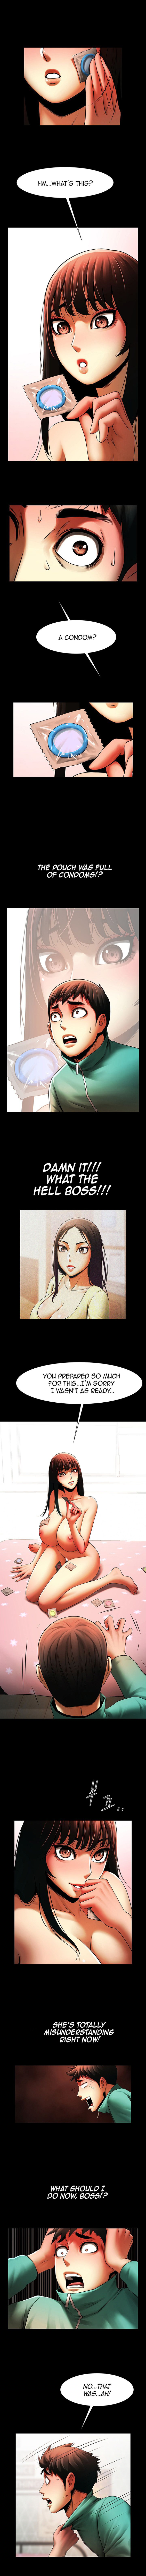 The Woman Who Lives In My Room - chapter 20 - #3